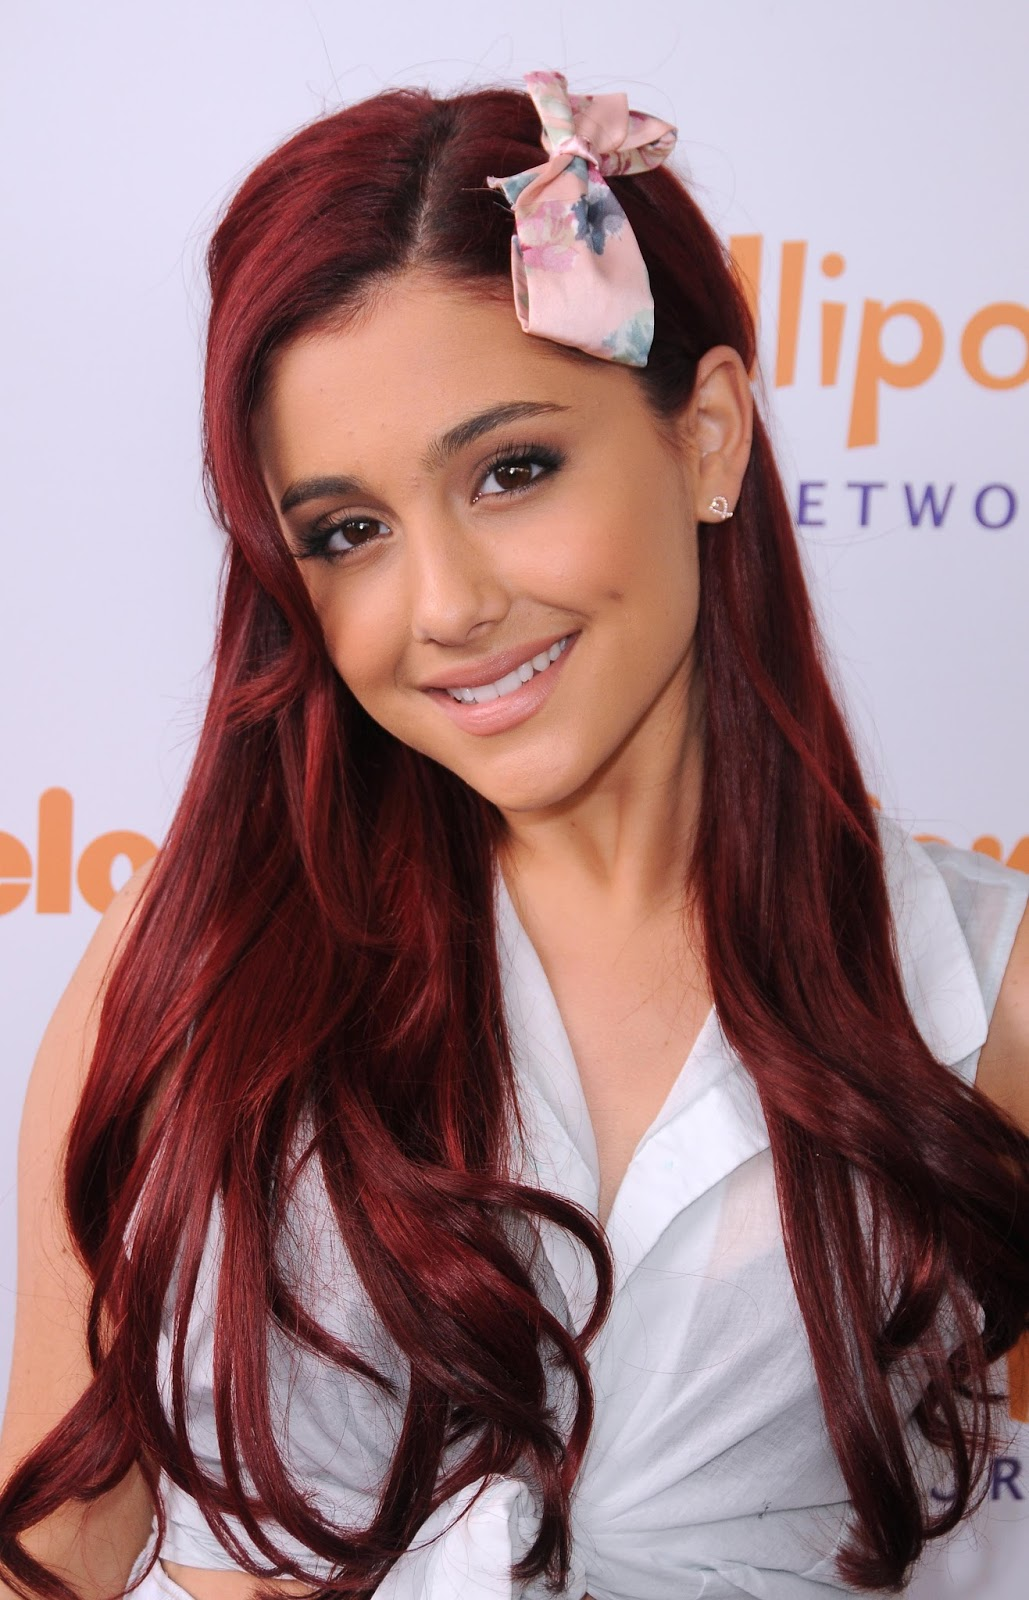 Labels: Celebrity Astrology: theastrologyplace.blogspot.com/2013/09/ariana-grande-sweetest-baby...